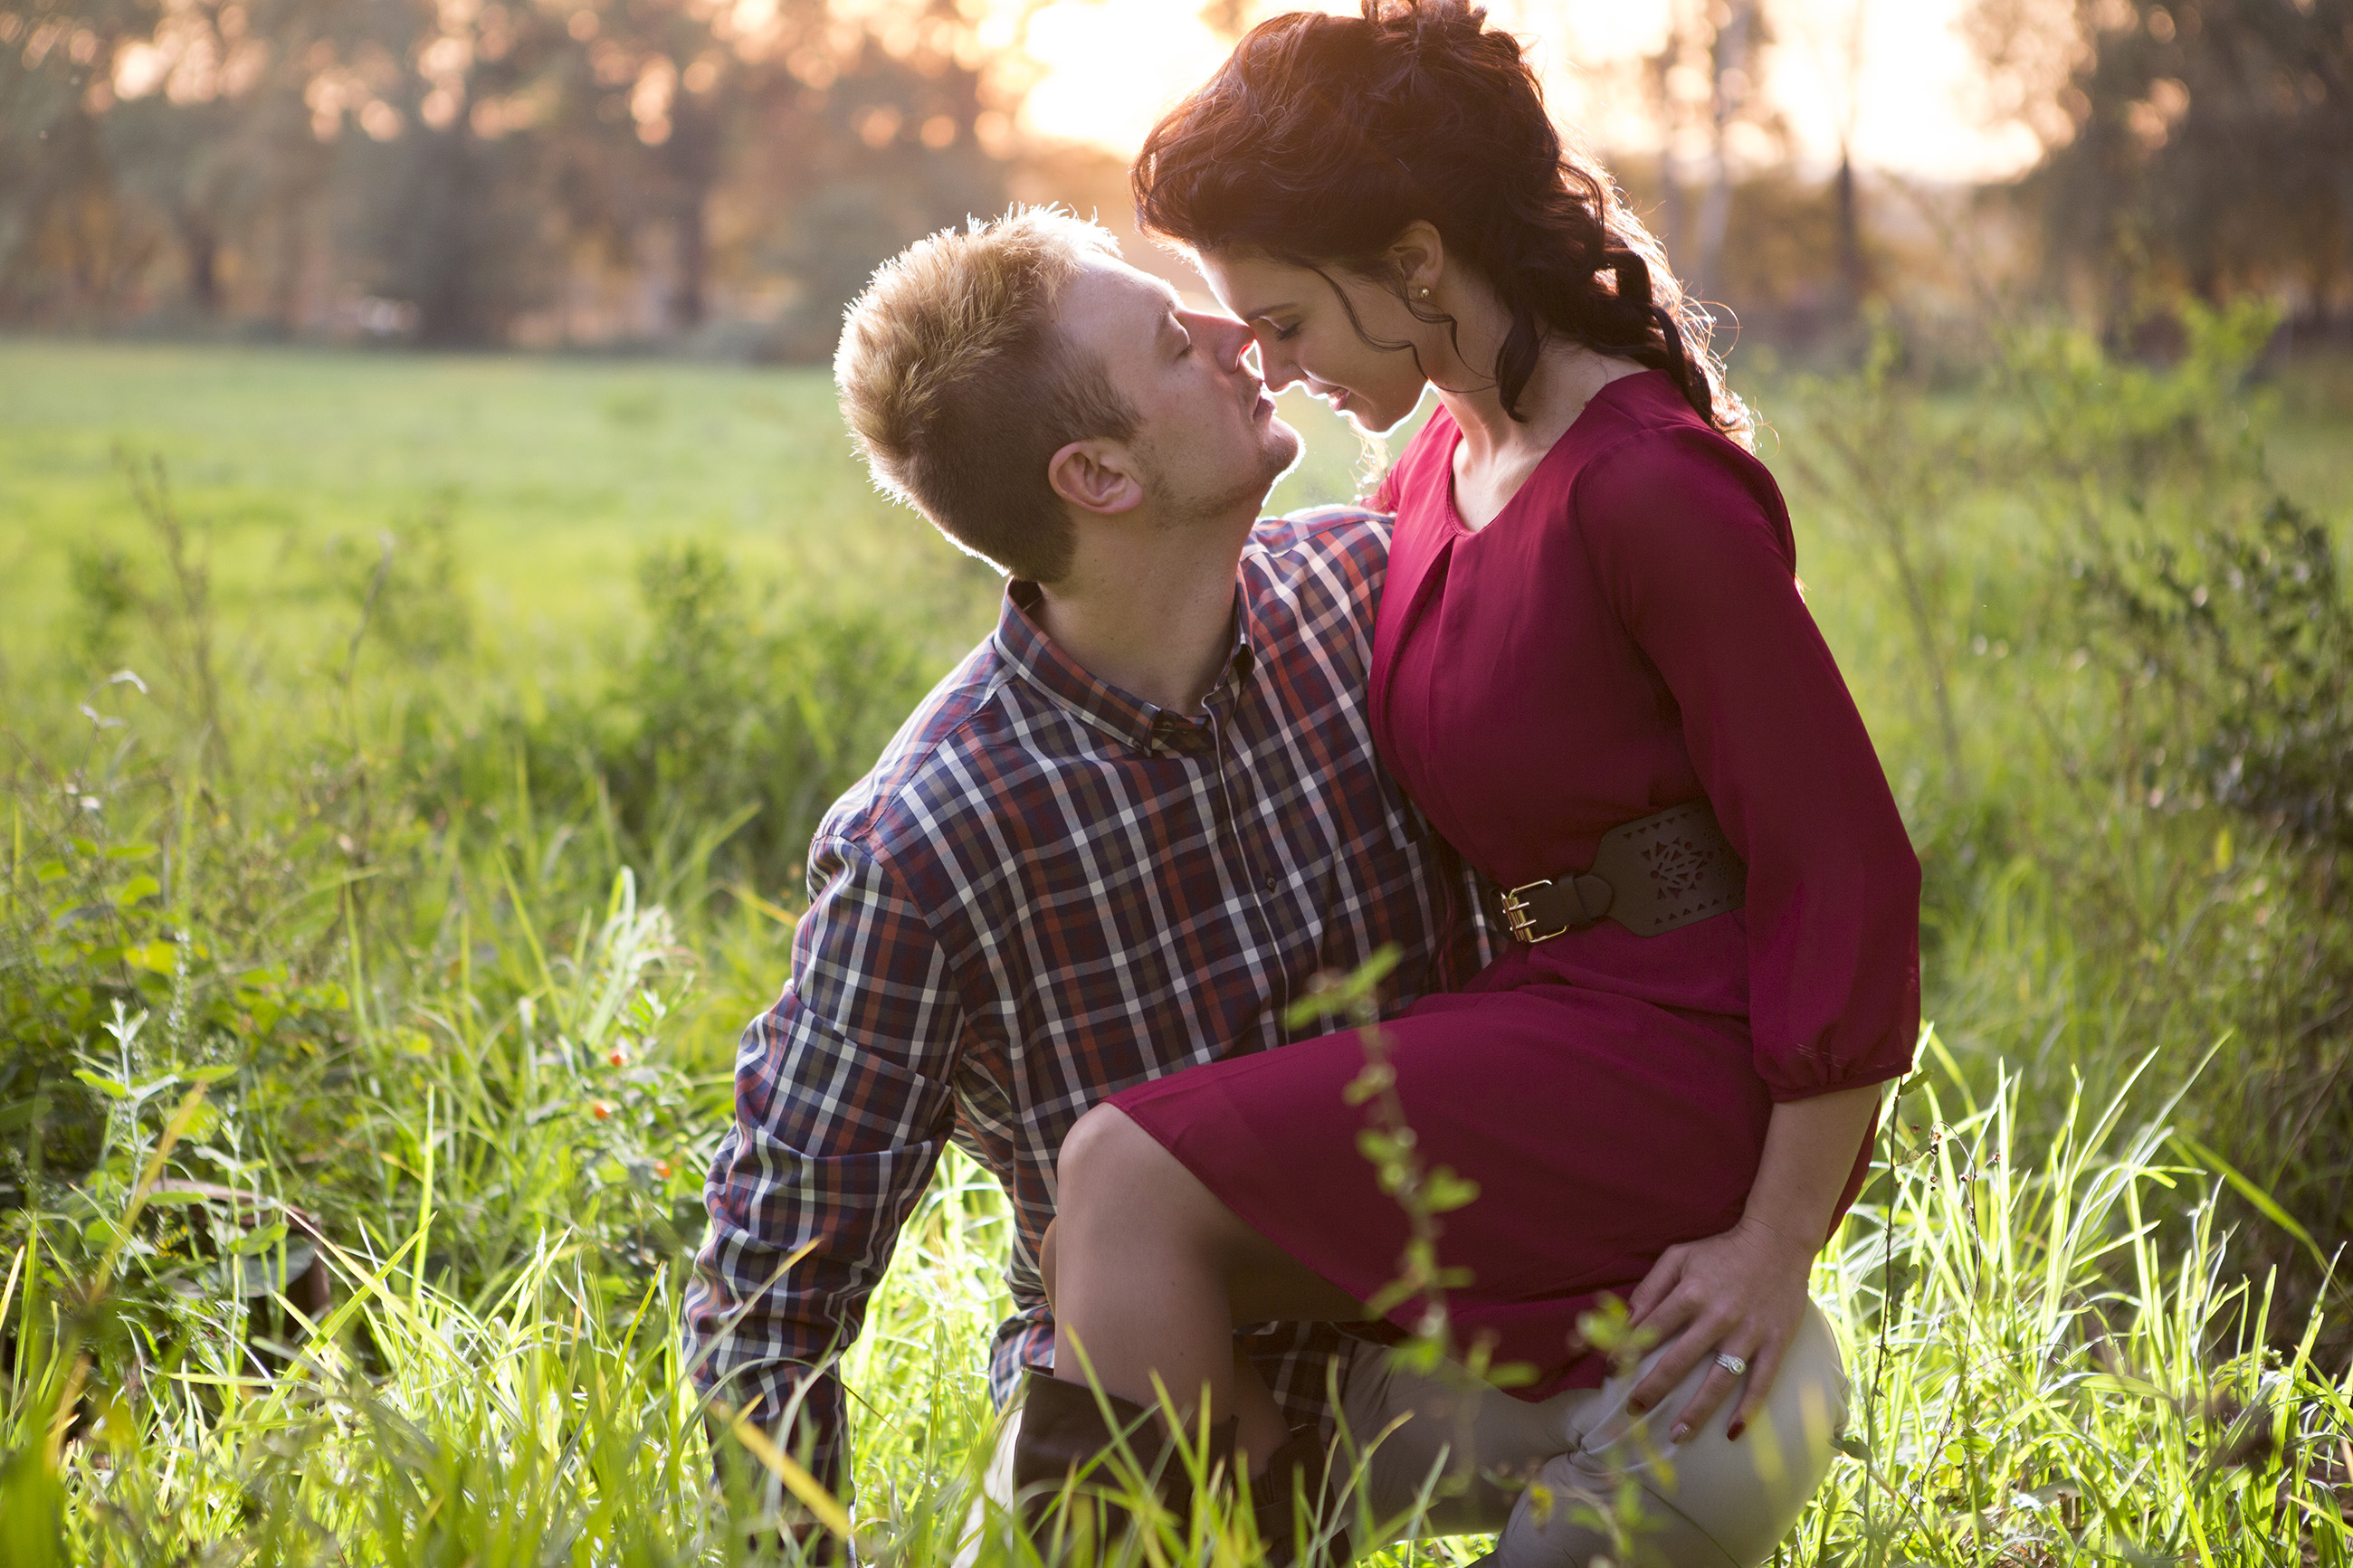 Darrell Fraser Award Winning Engagement Photographer